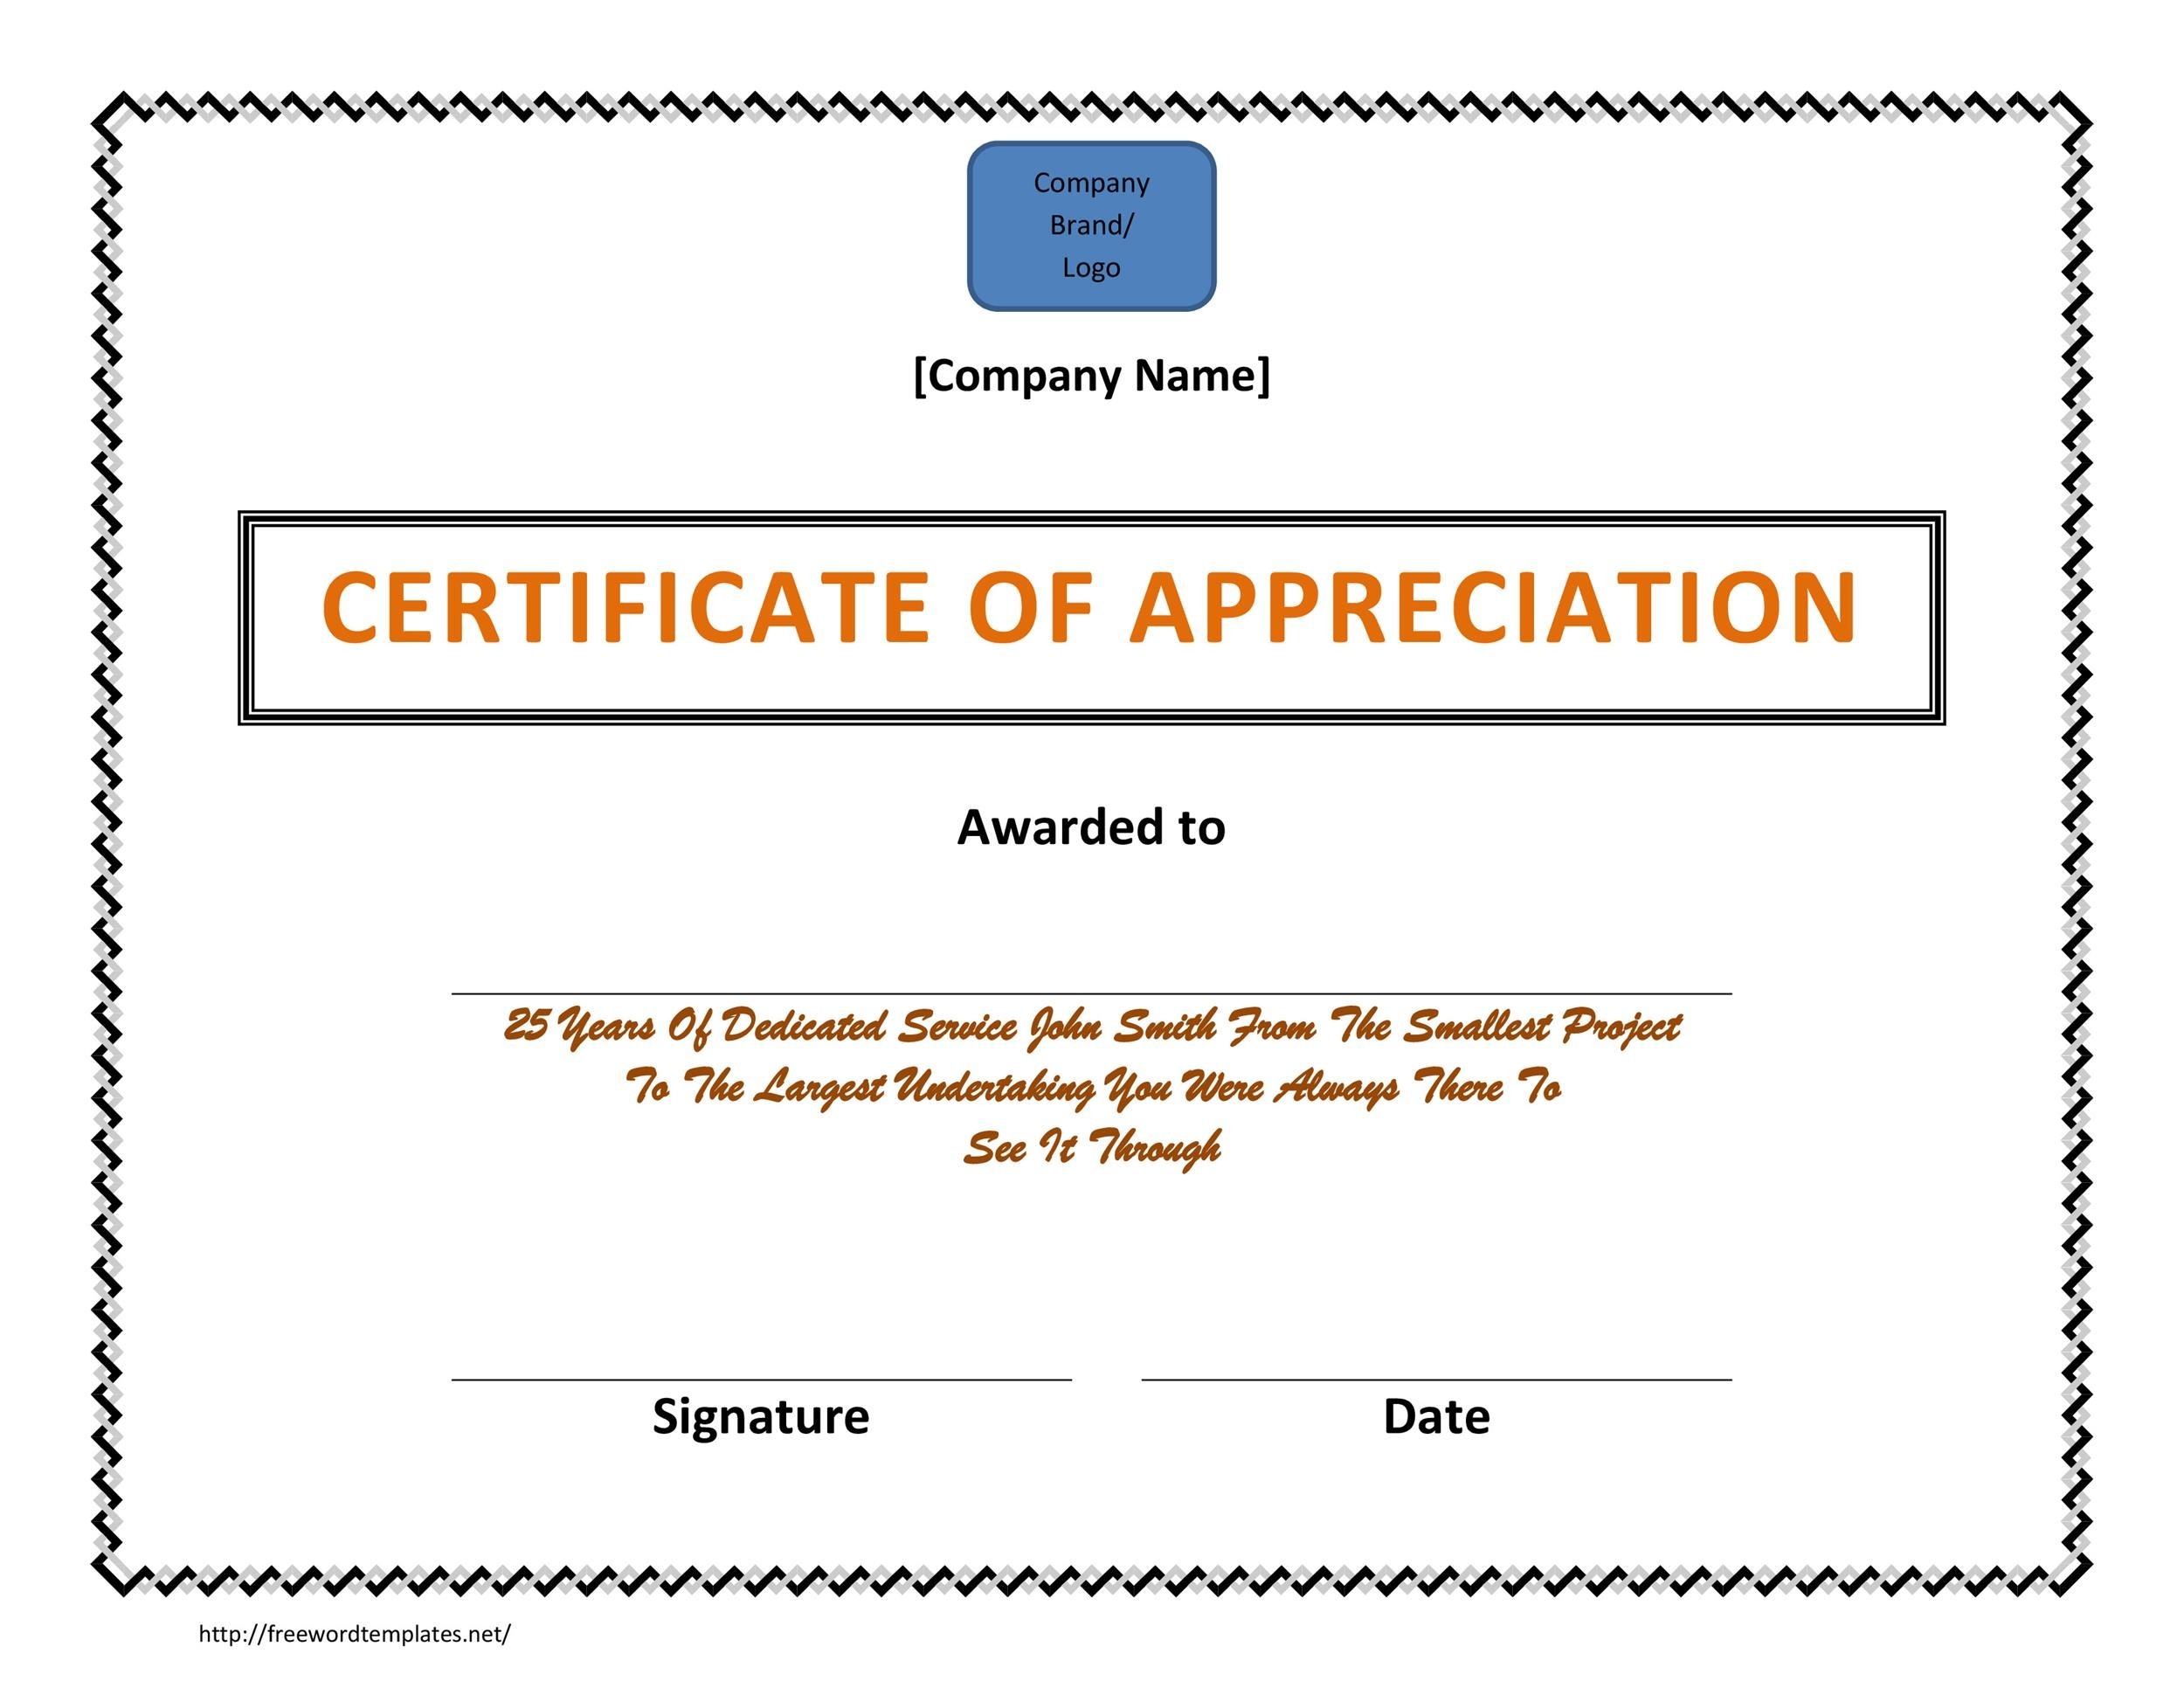 30 free certificate of appreciation templates and letters printable certificate of appreciation 05 yadclub